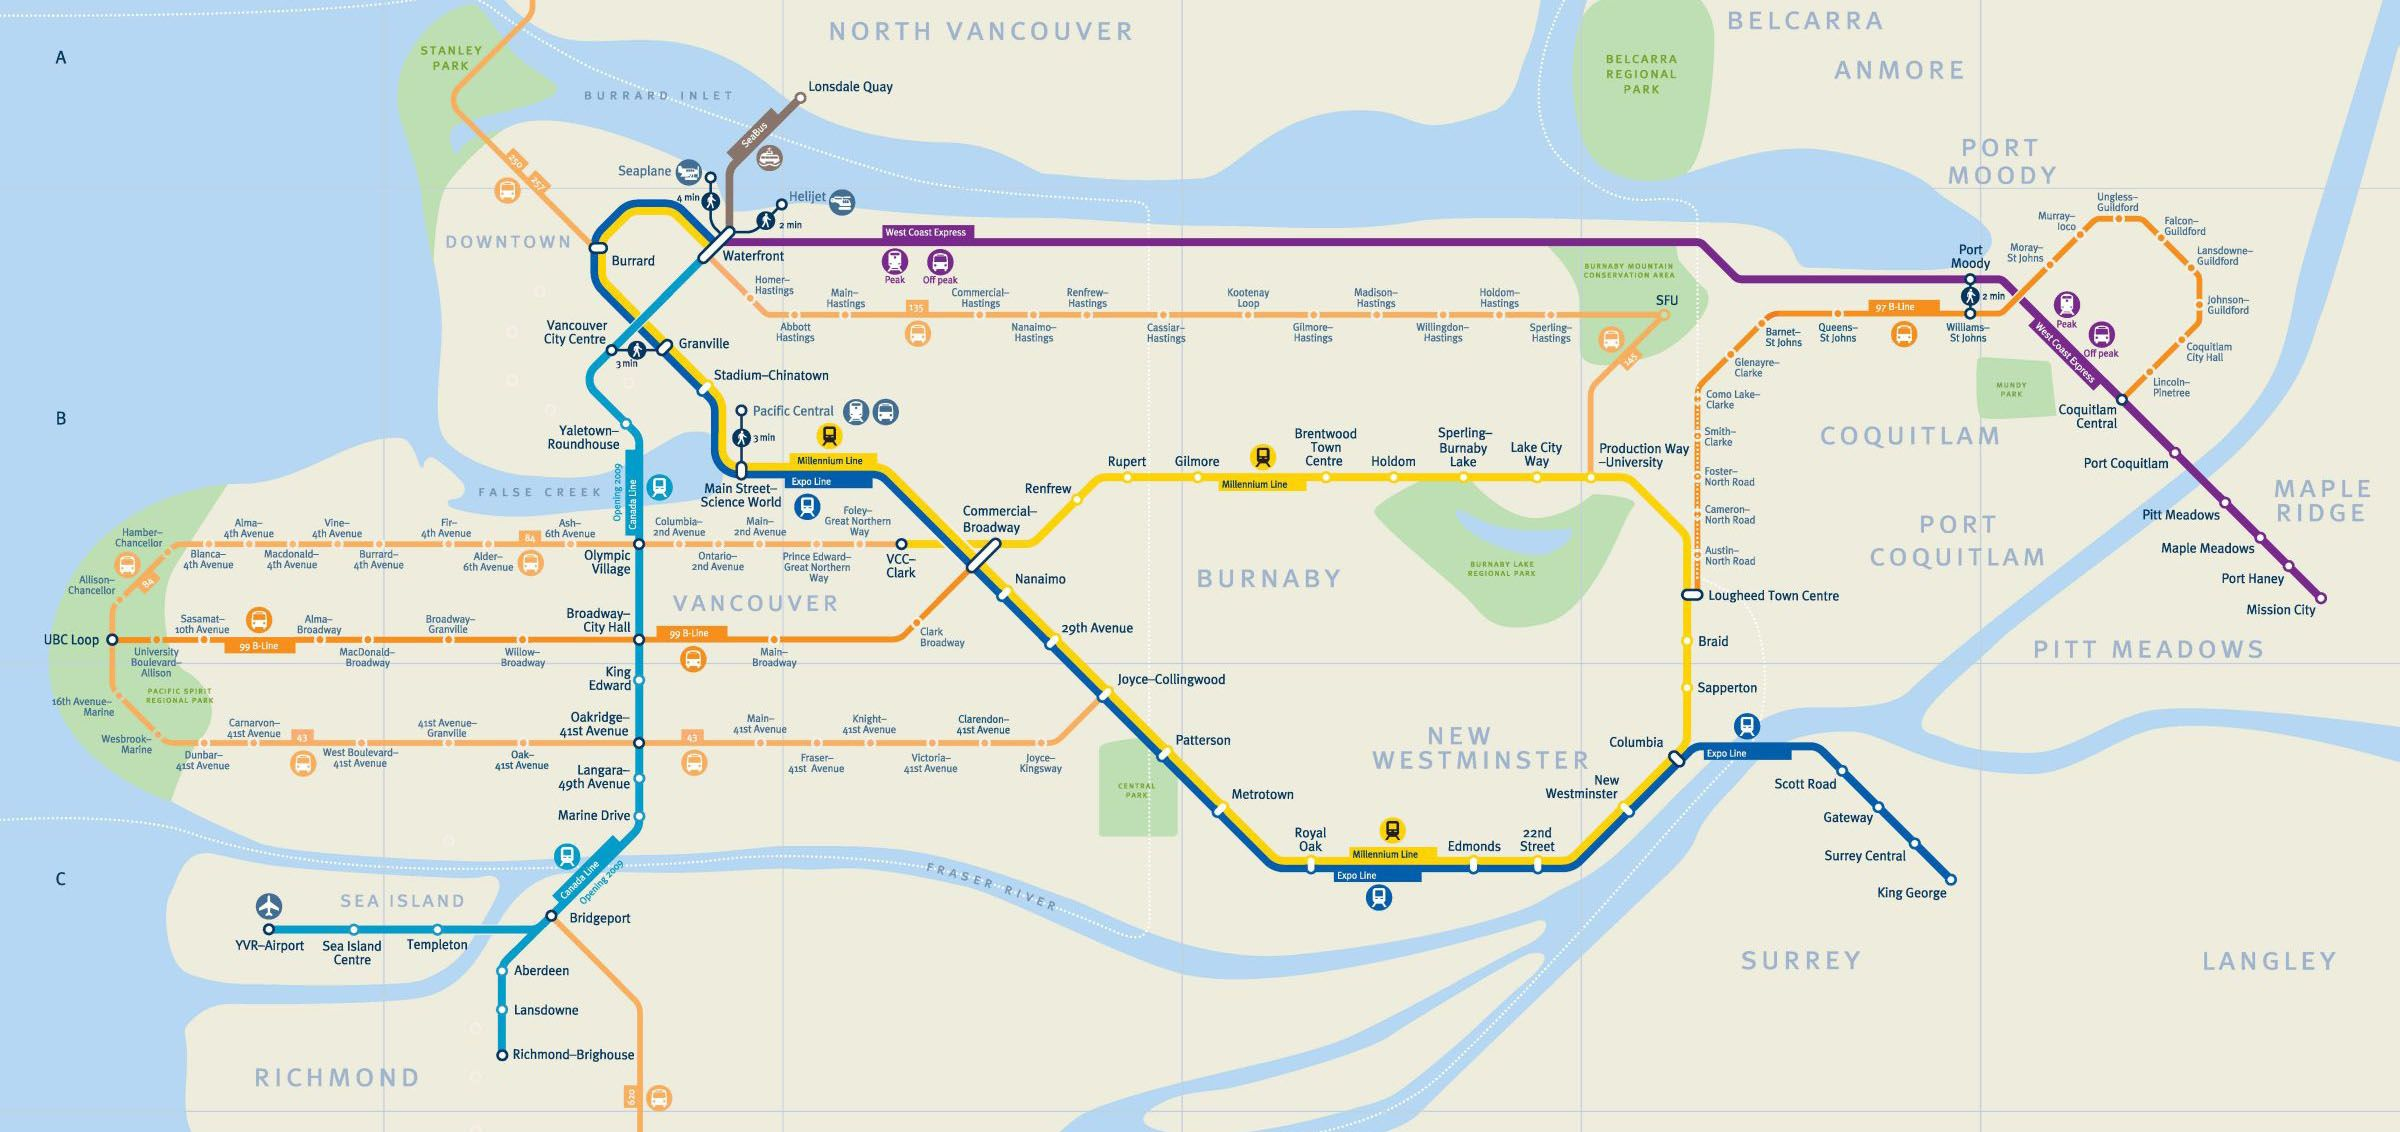 Bc Skytrain Map vancouver skytrain map | Travel | Vancouver map, Skytrain